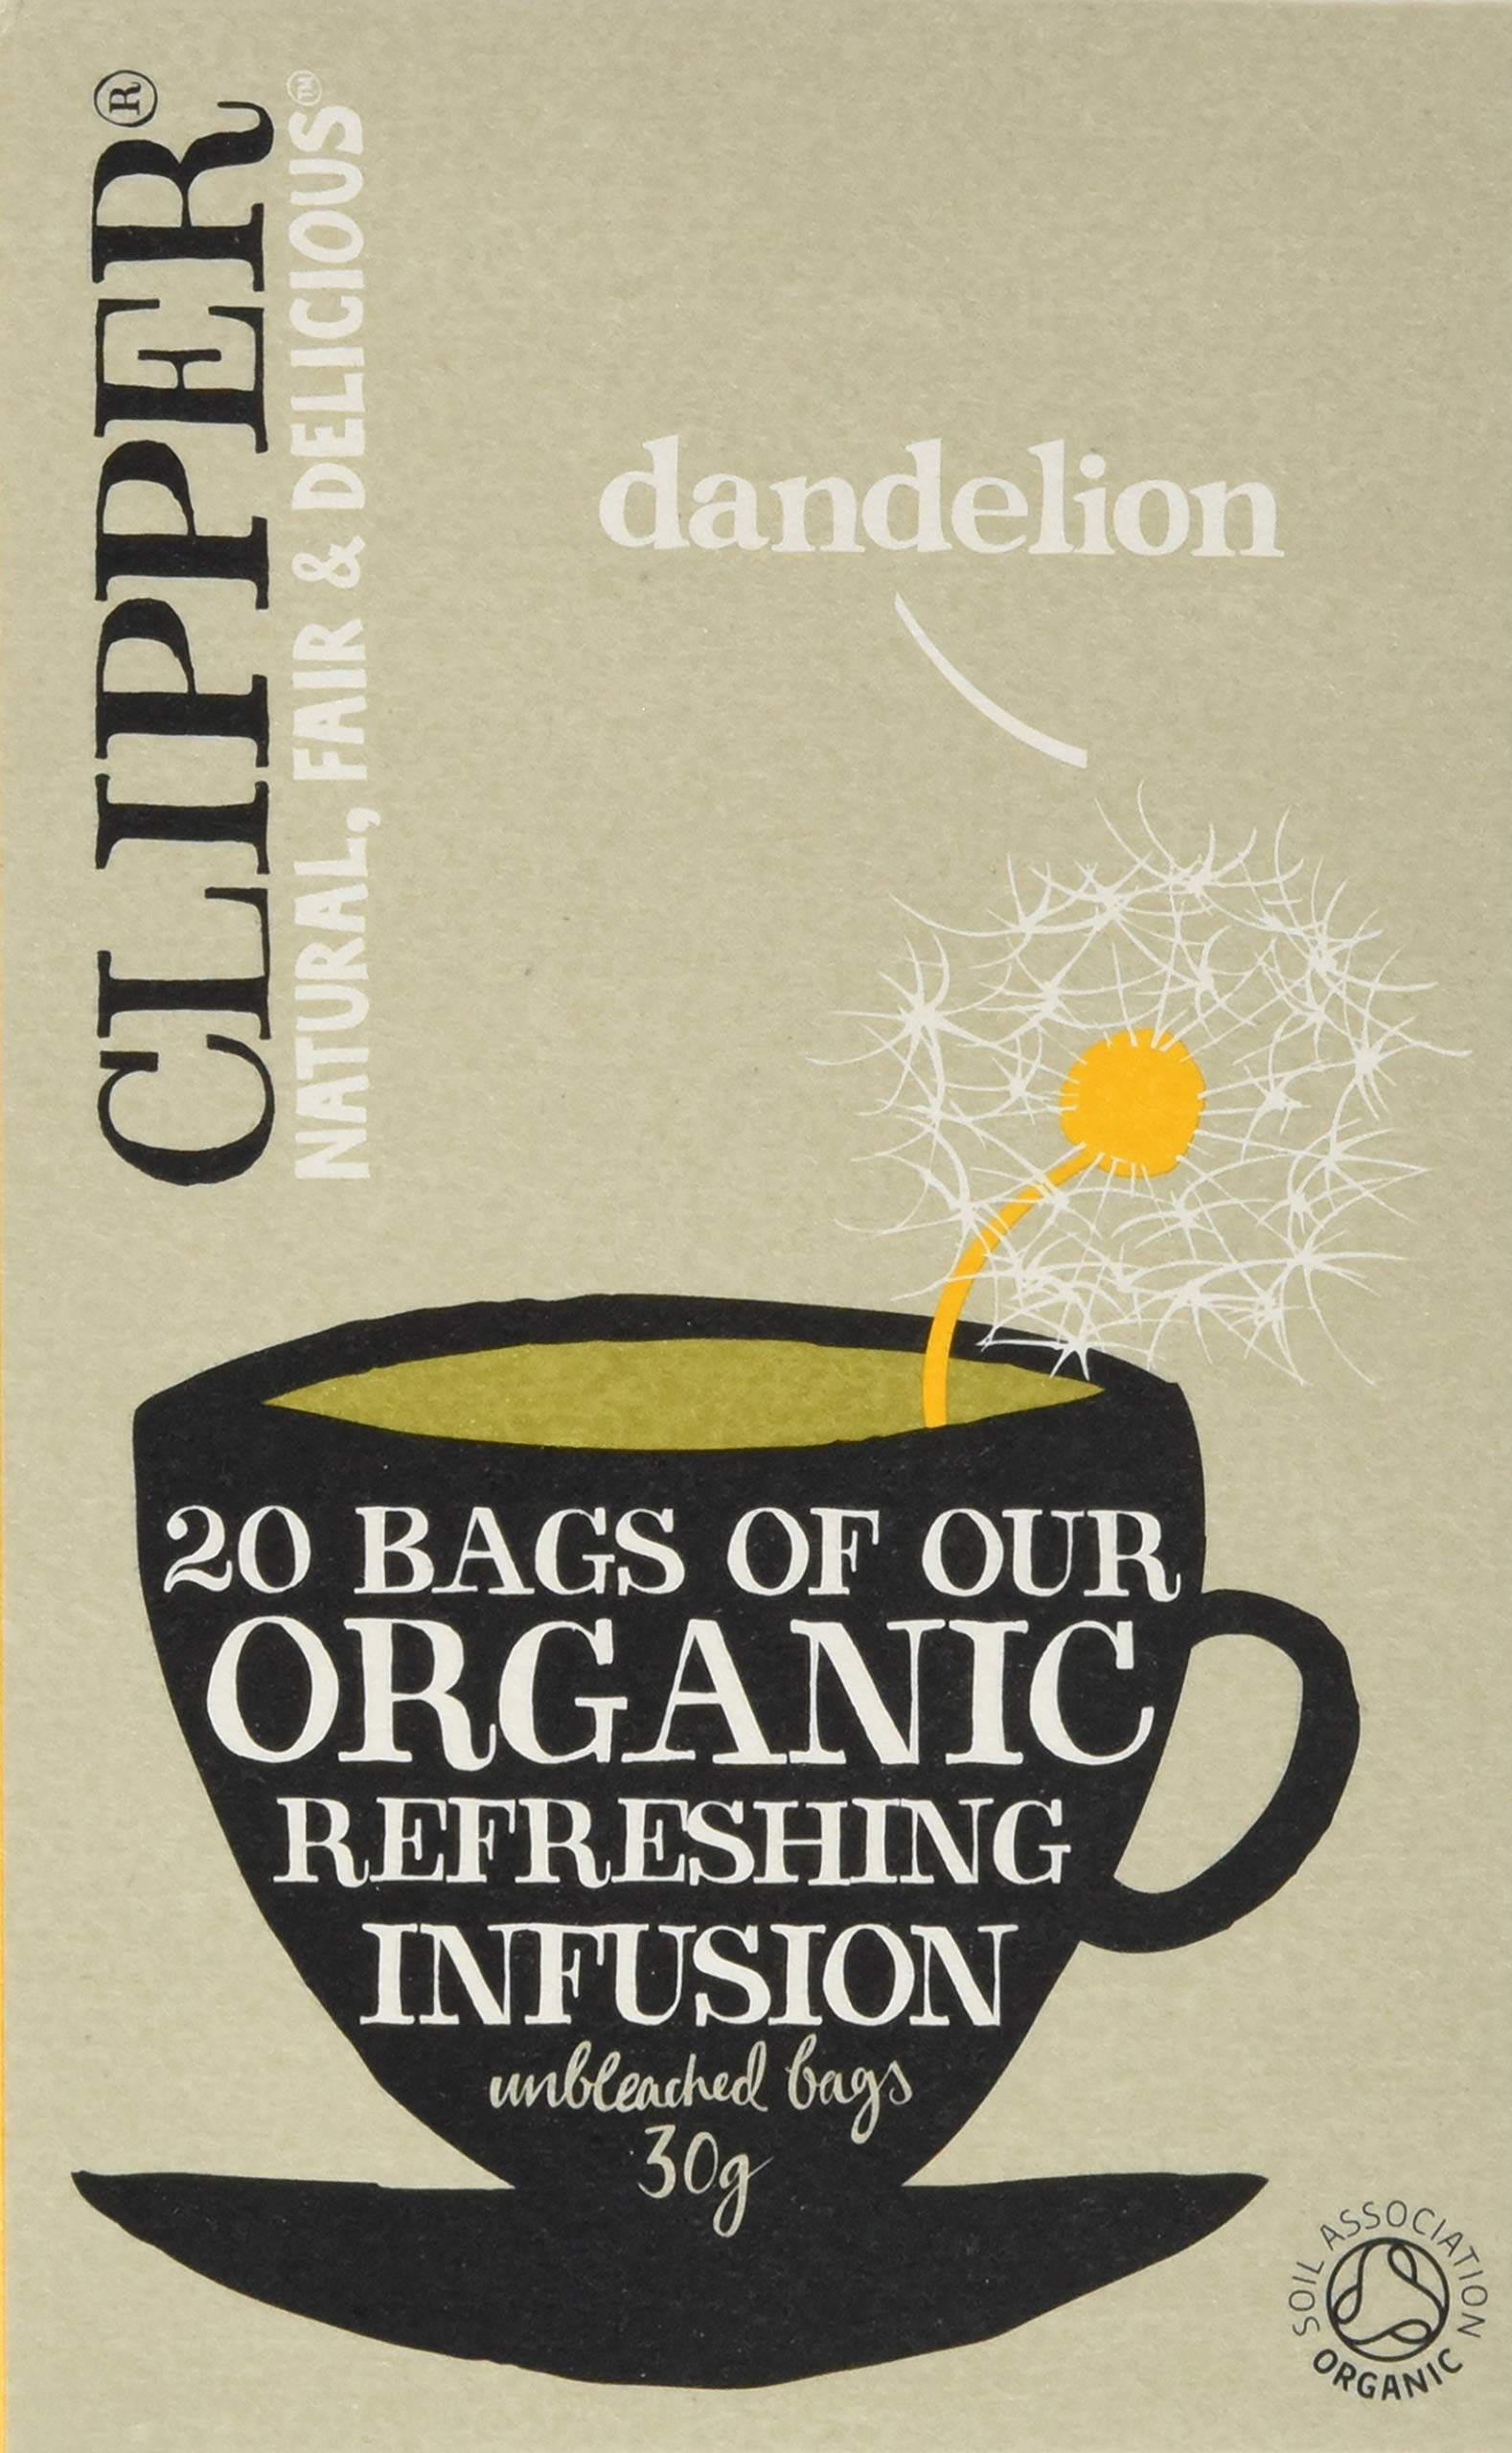 Clipper organic dandelion tea bundle (soil association) (infusions) (6 packs of 20 bags) (120 bags) (a floral tea with aromas of dandelion) (brews in 2-5 minutes)